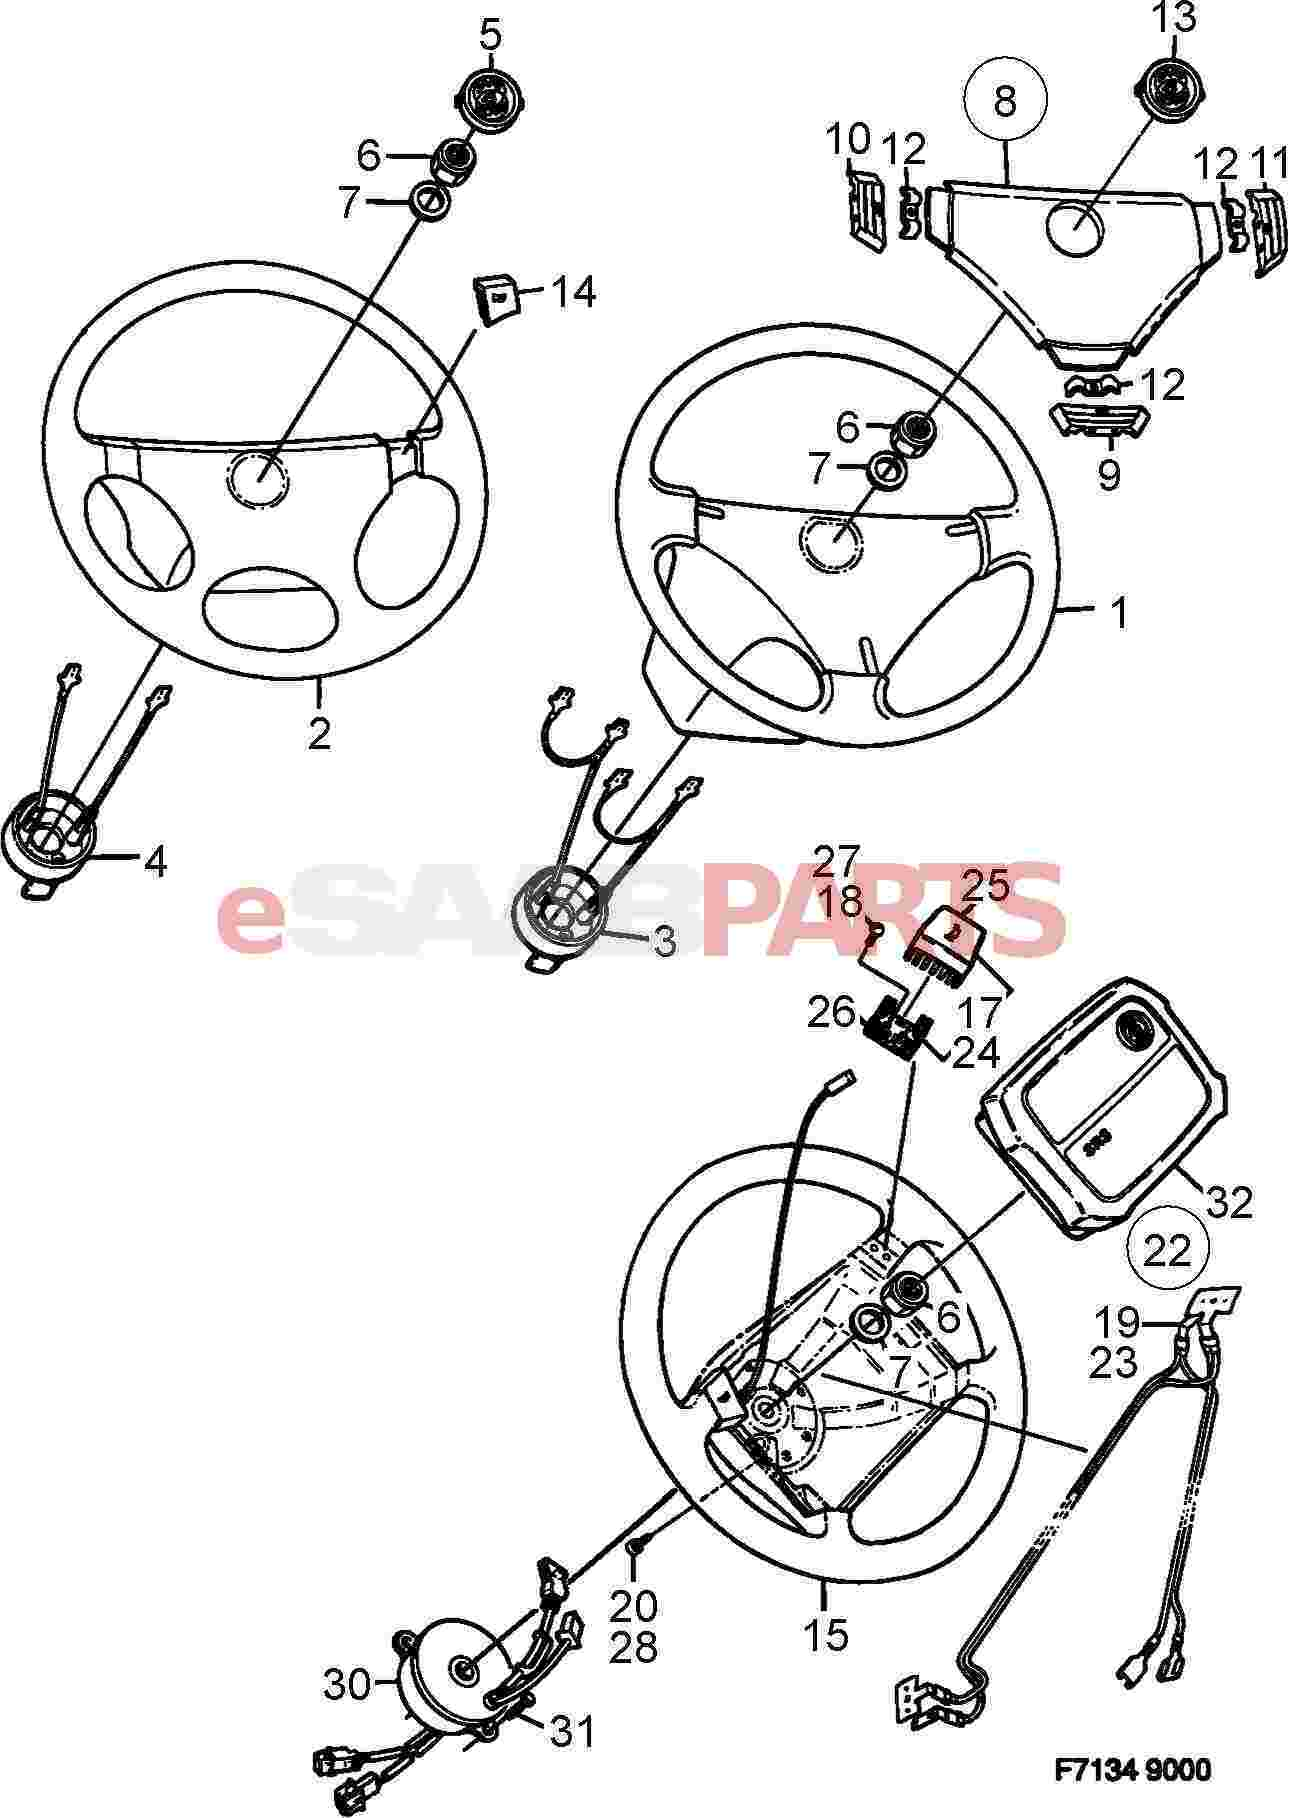 4003380  saab horn button